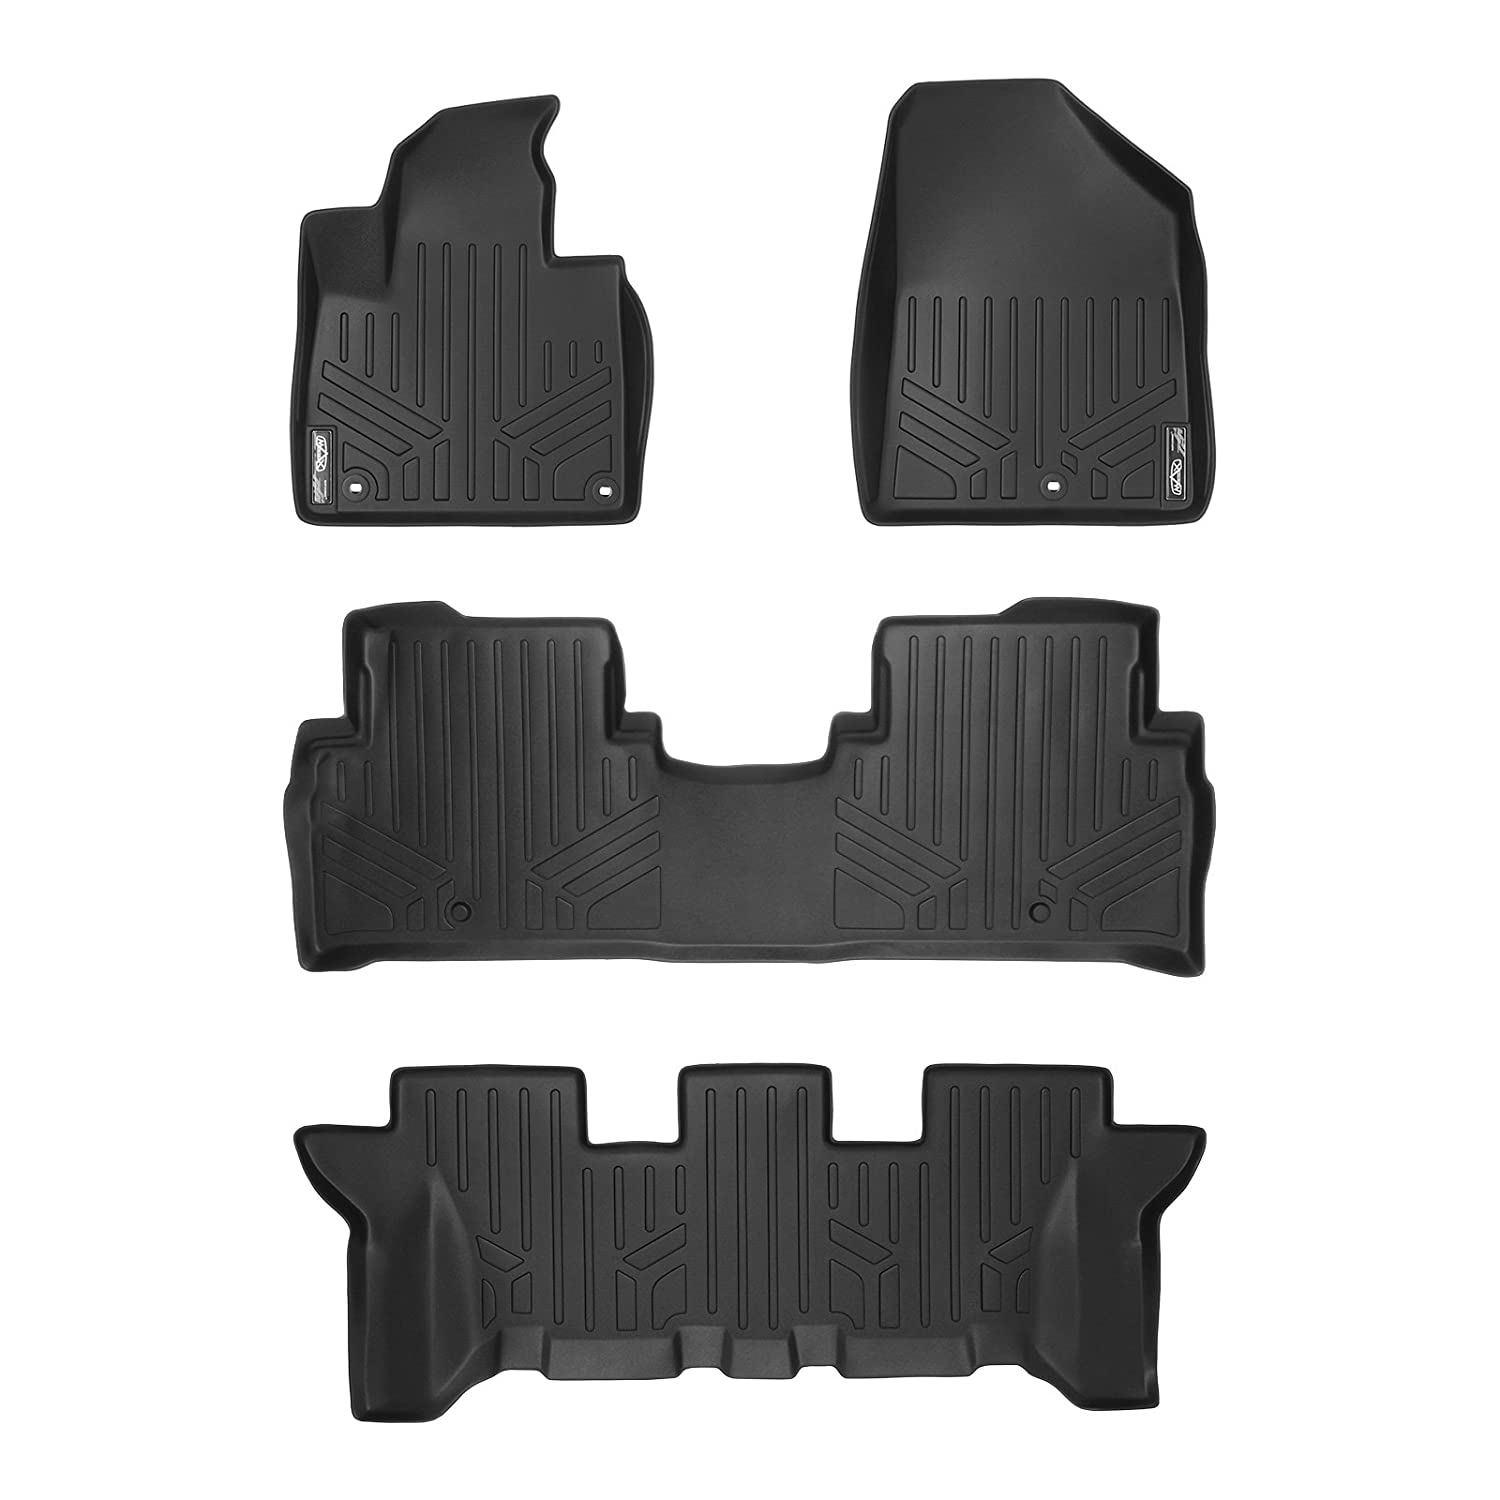 denali automotive set yukon row black for and mats floor xl suburban com gmc maxliner maxfloormat max chevrolet amazon dp mat